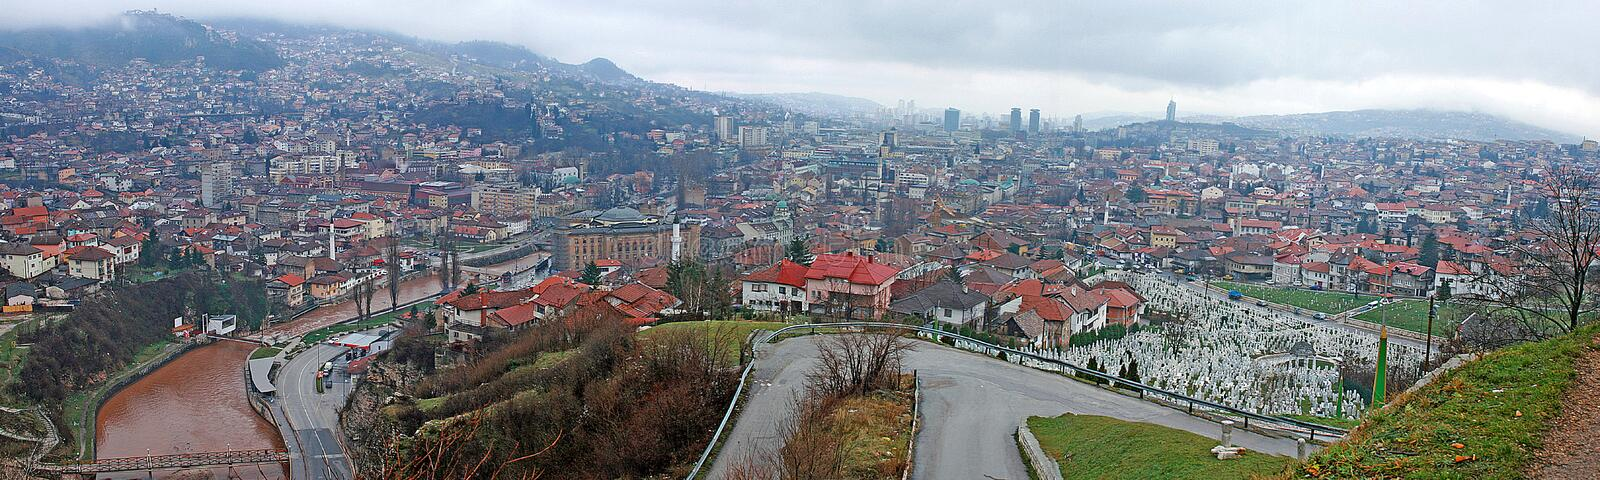 Panoramic view to the city of Sarajevo stock photography